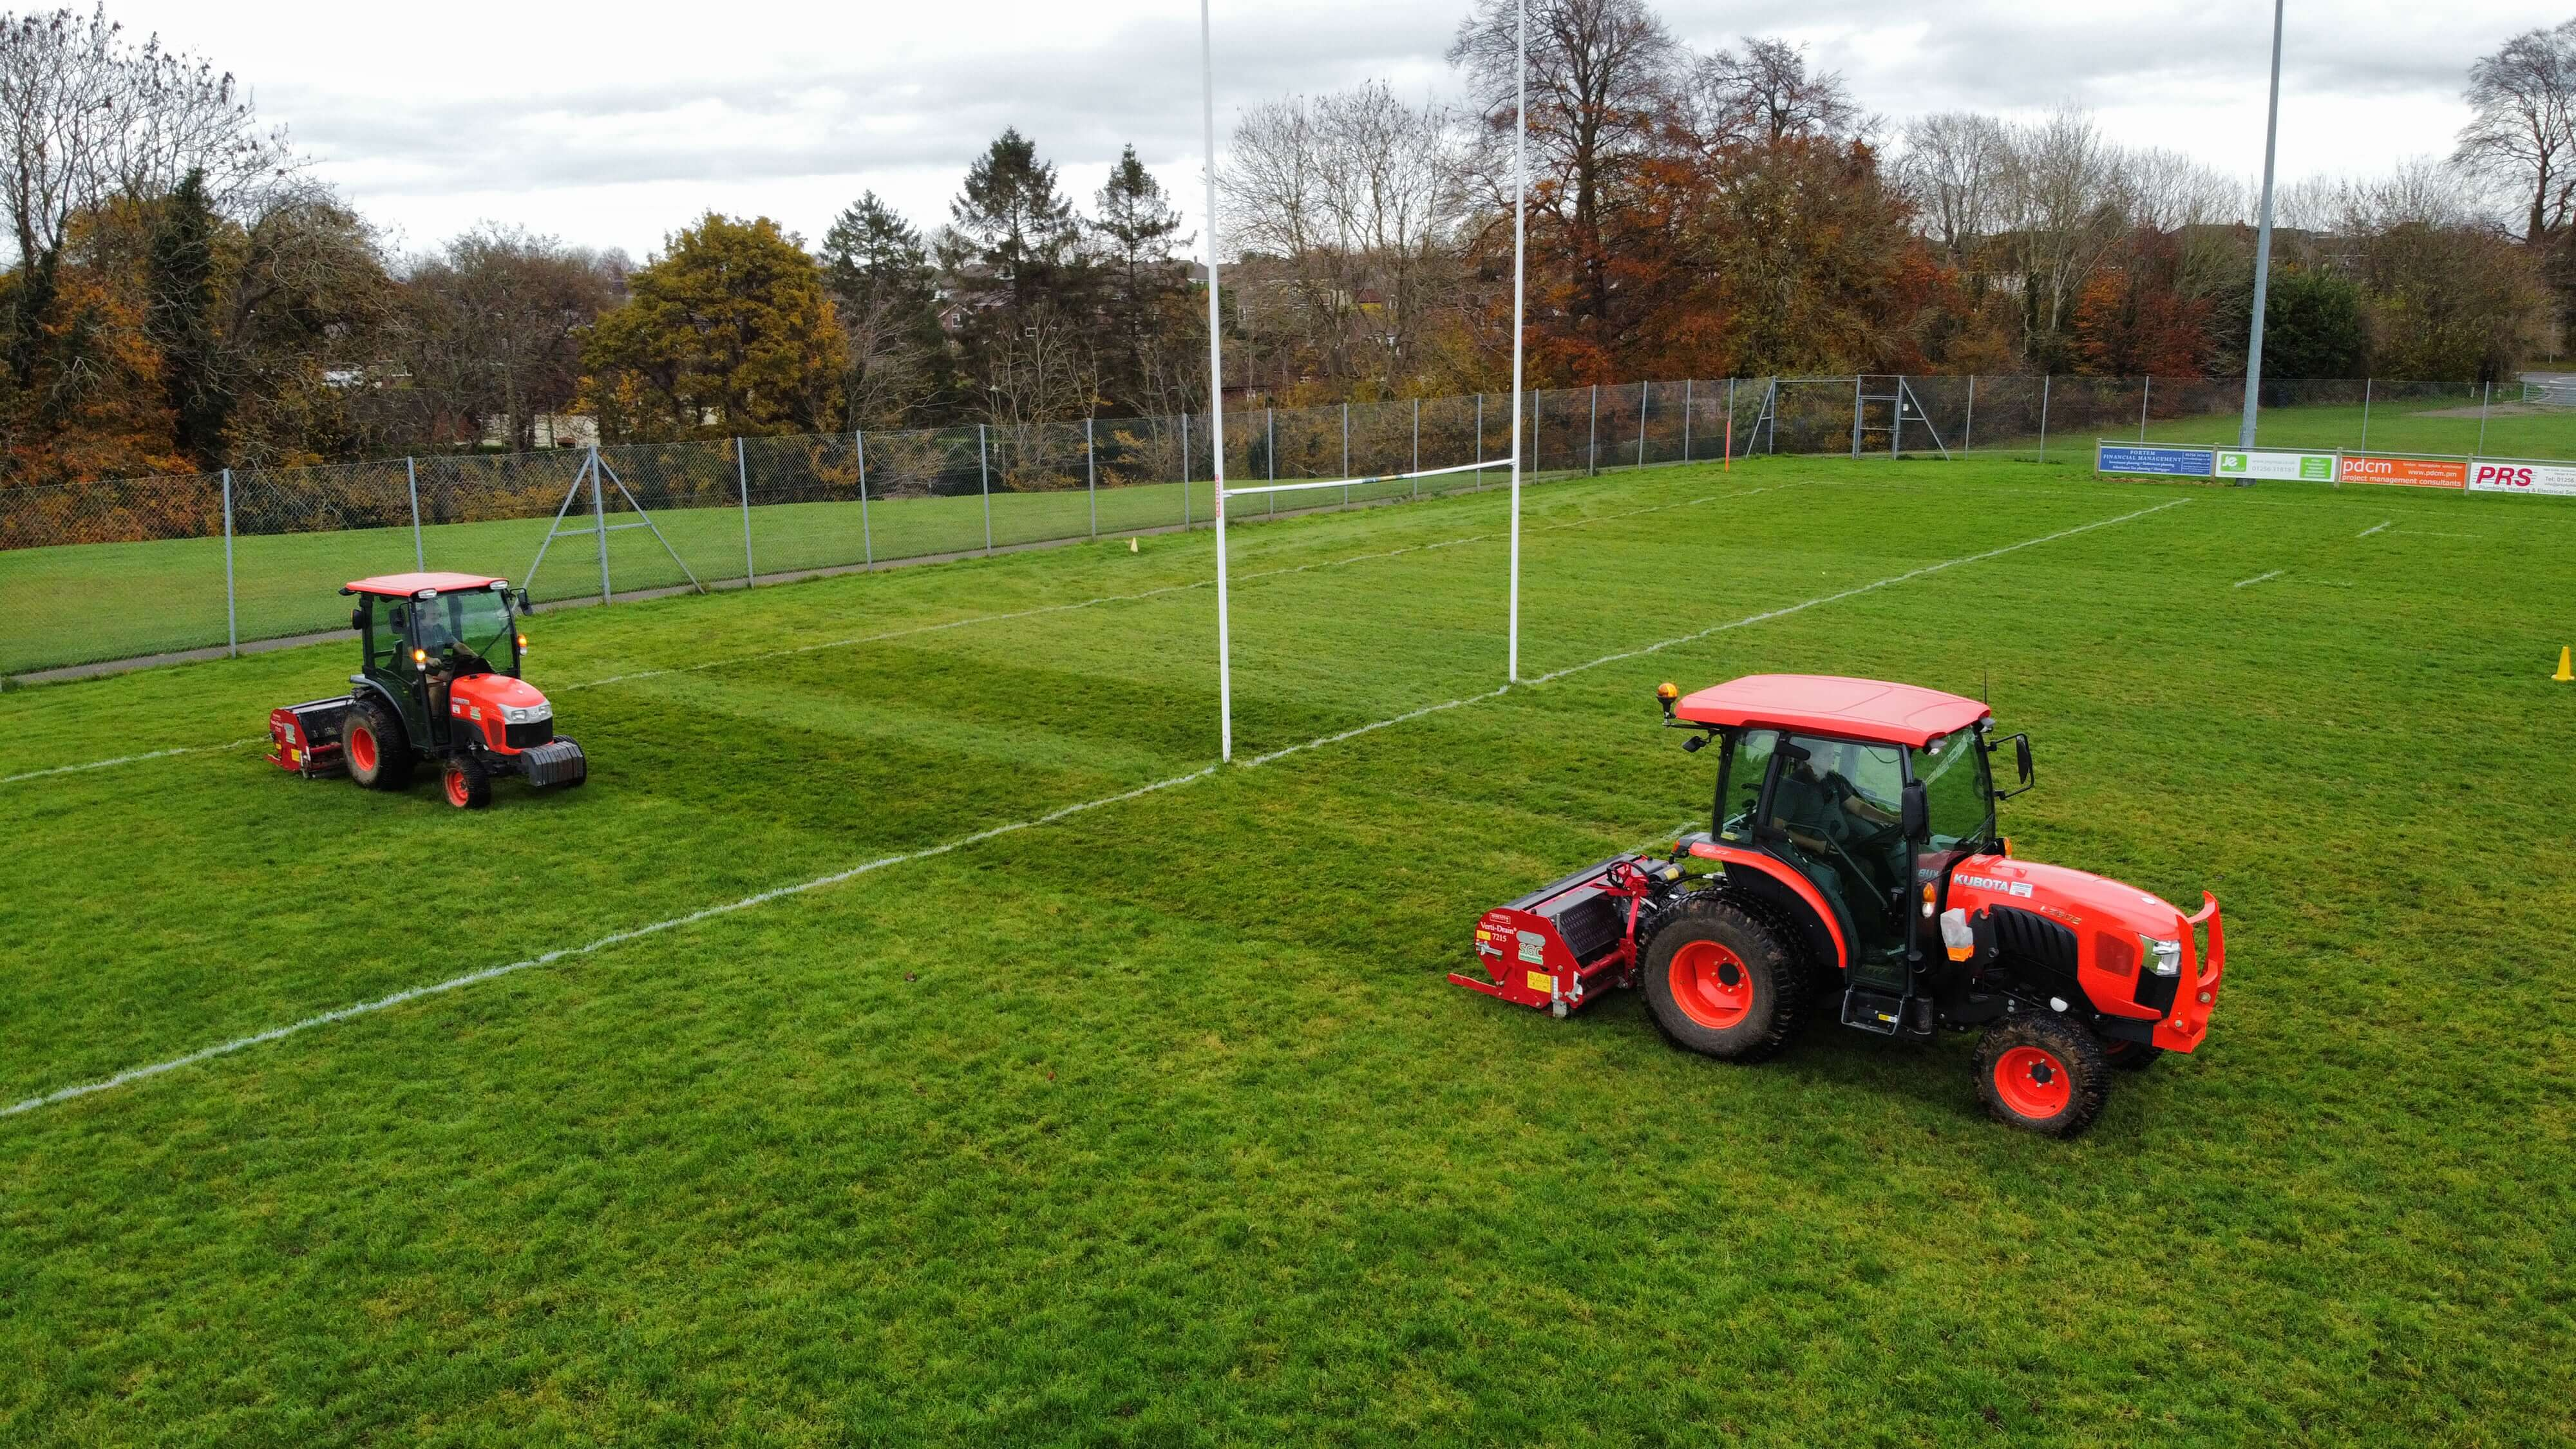 True tractors and aerators working on a rugby pitch